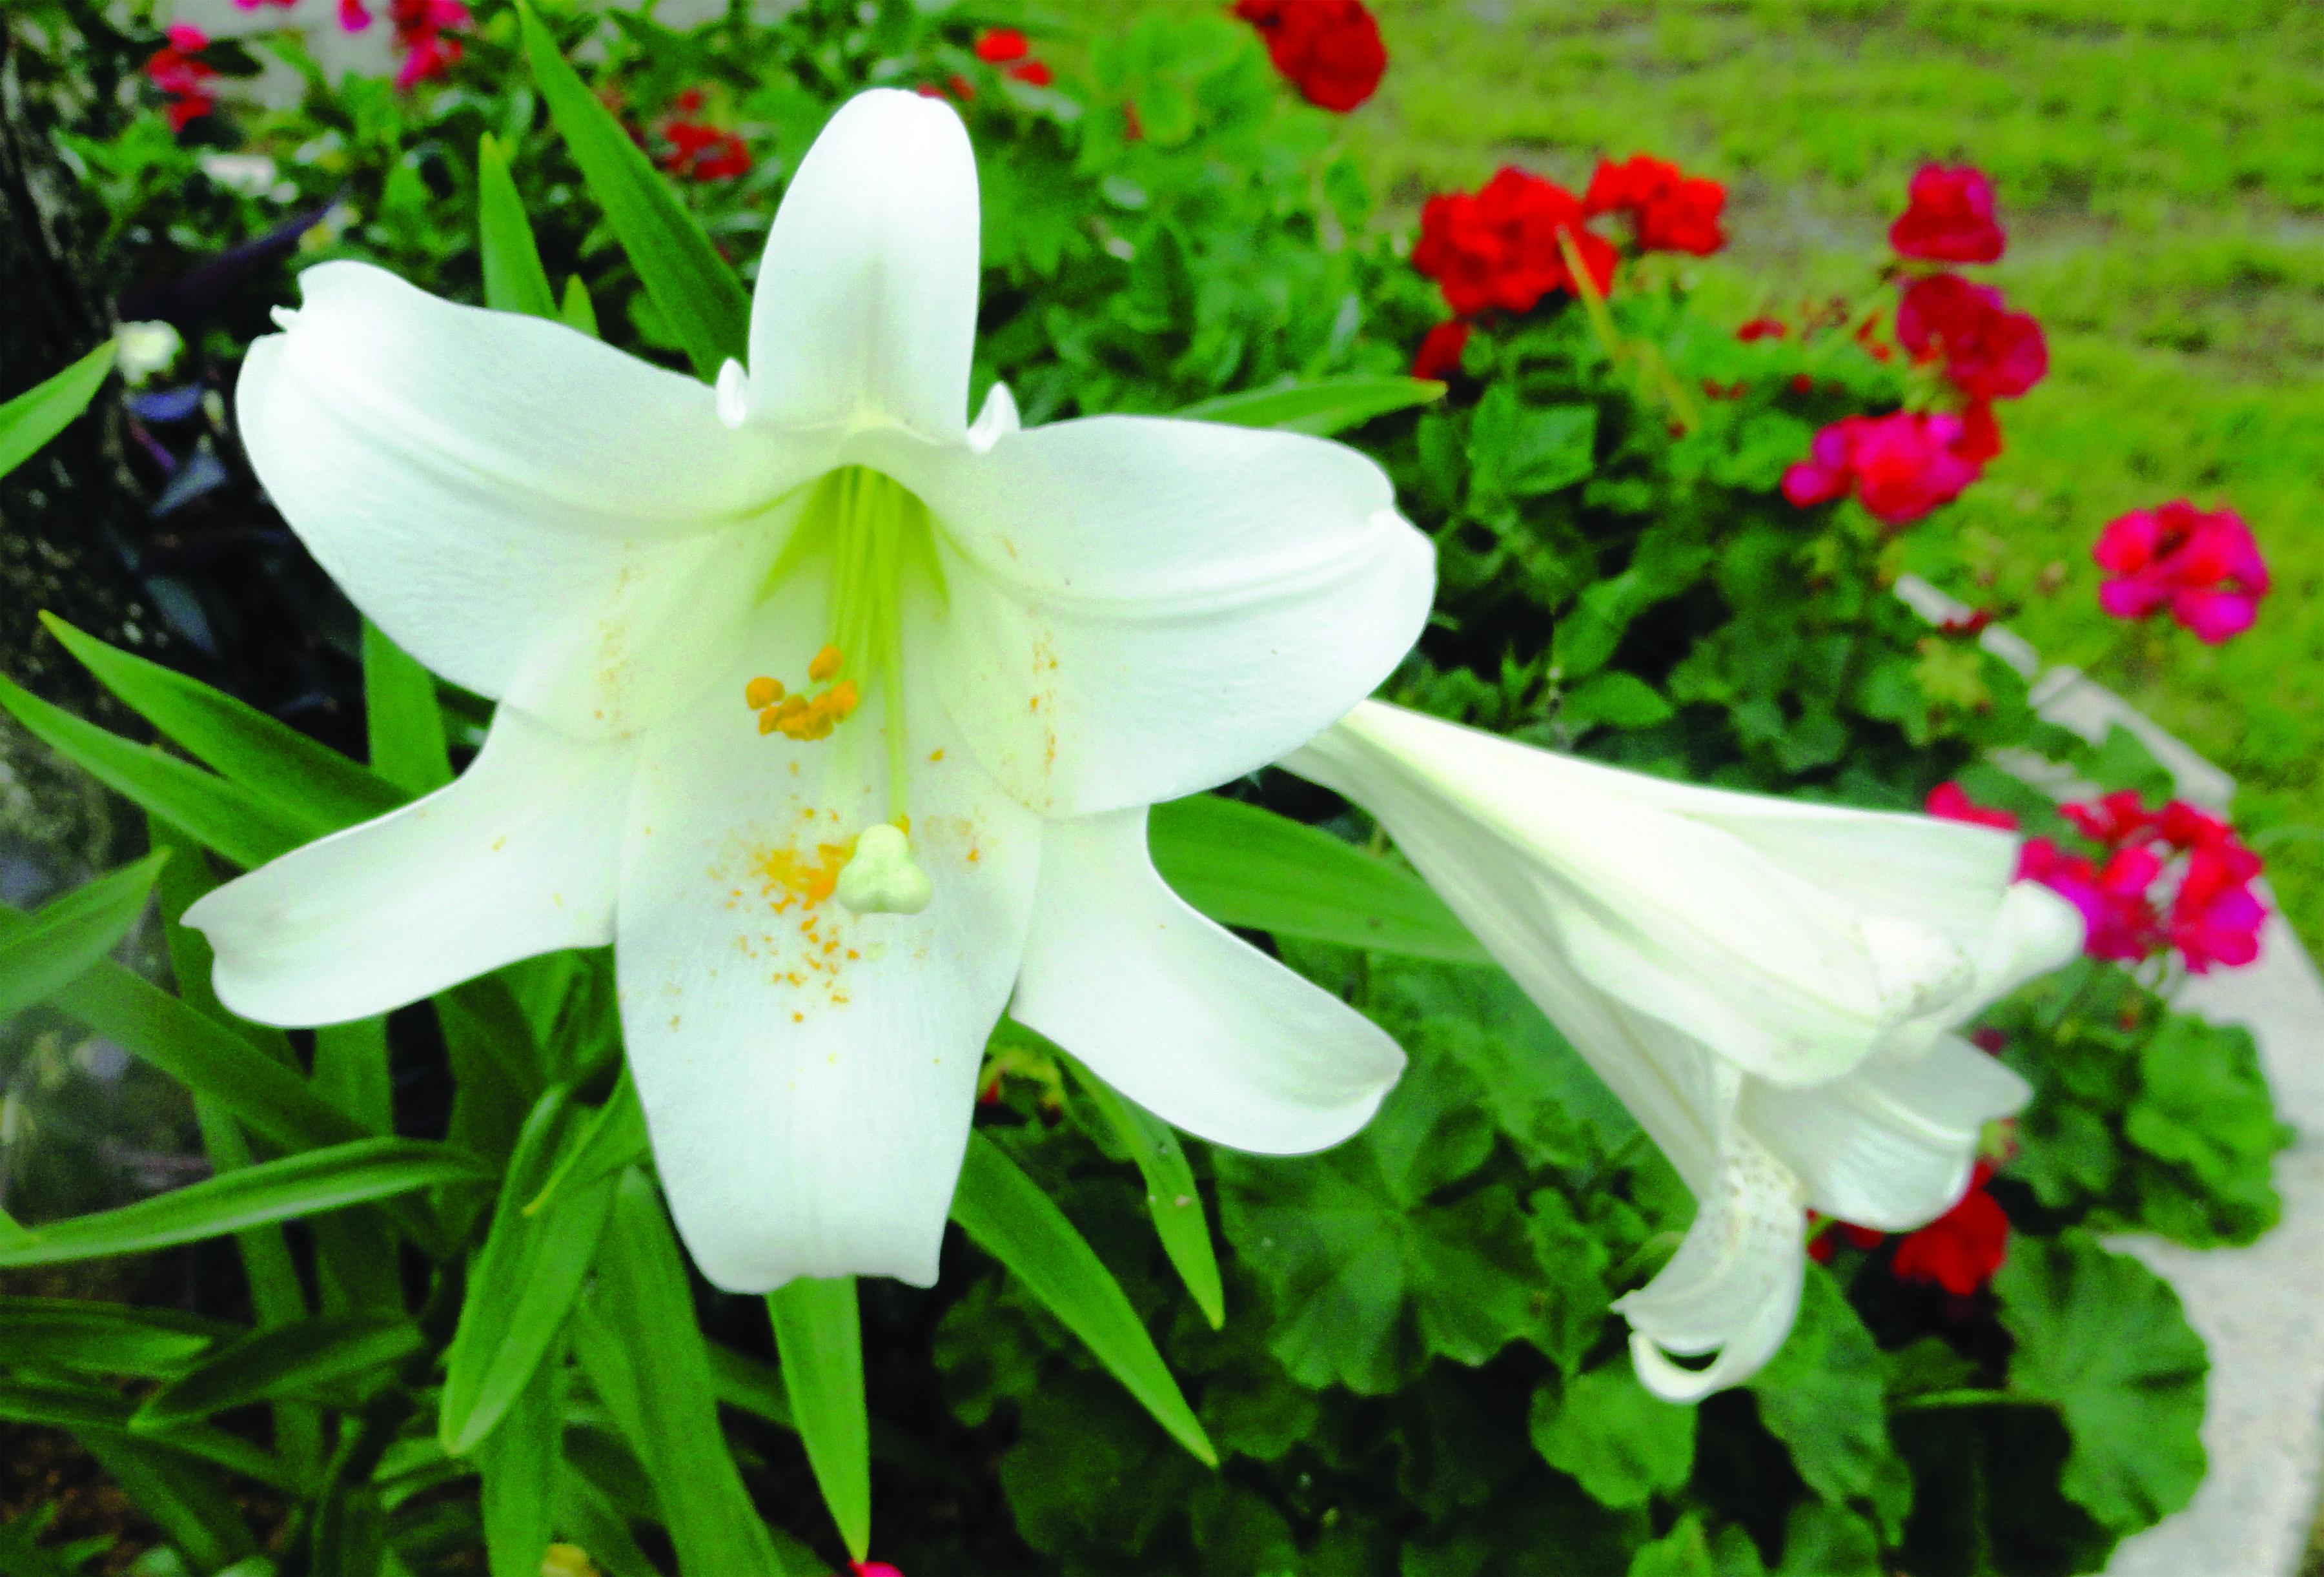 Replant your easter lilies for a treat next year the post newspaper the newest blooming bulb addition in my landscape is an easter lily the source of which is a potted specimen i received a few years ago i was not about izmirmasajfo